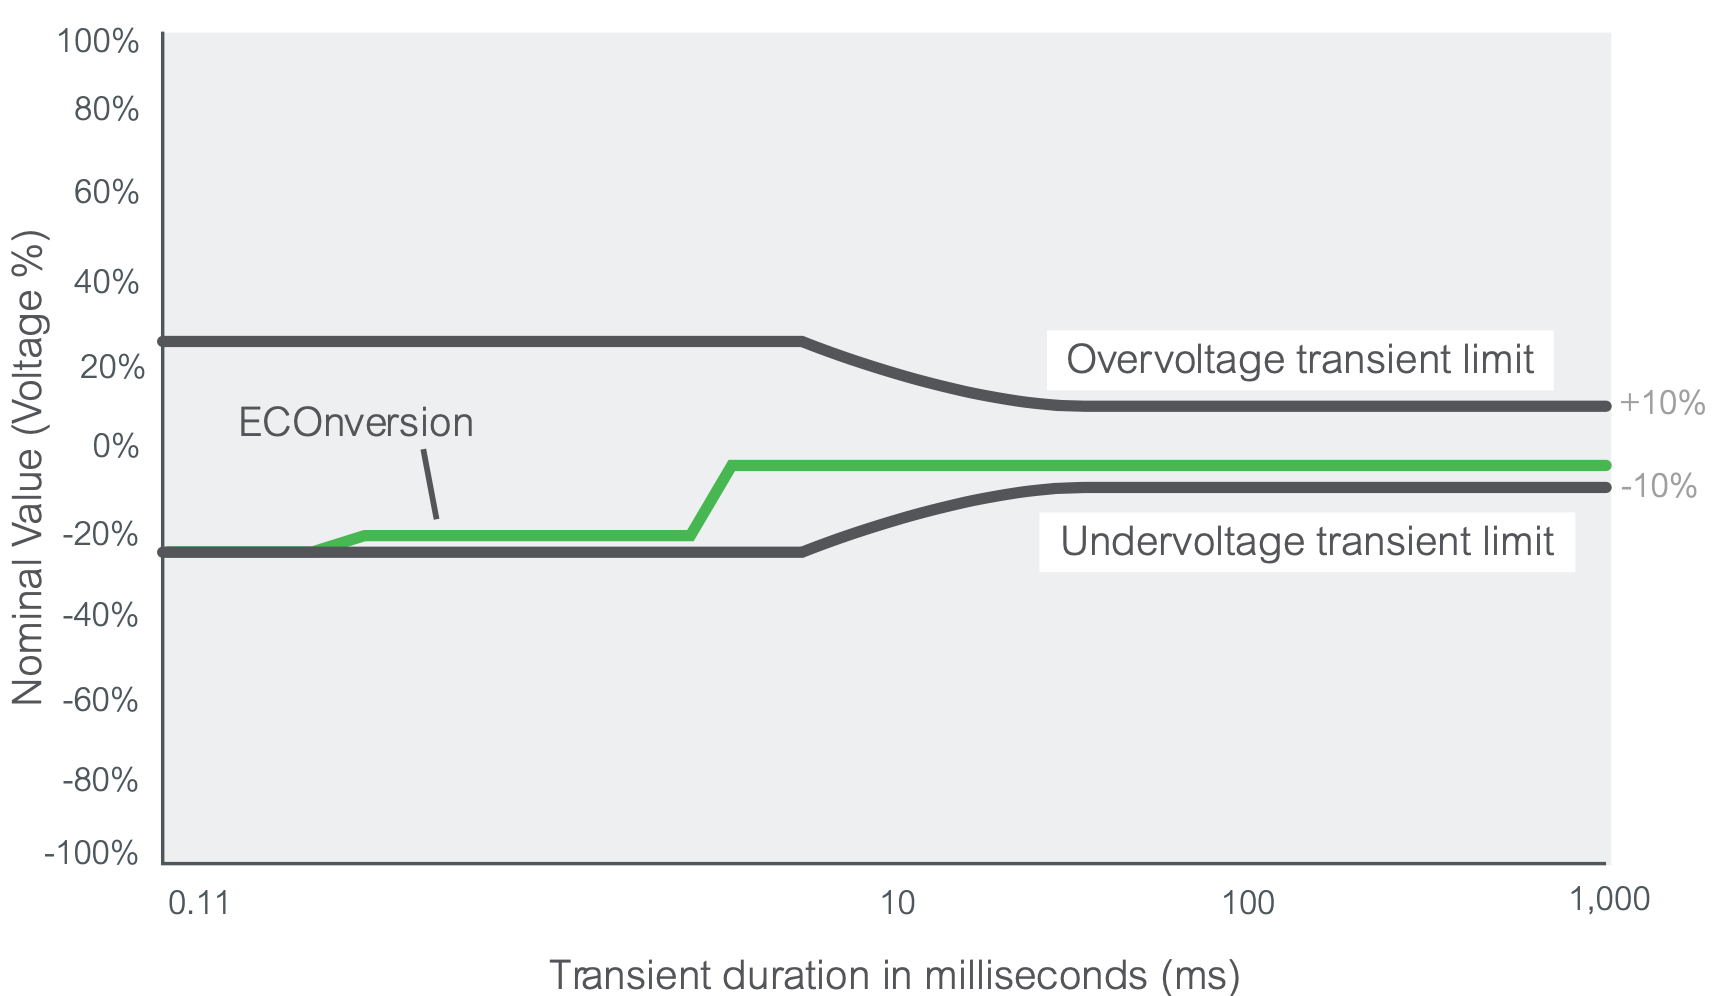 ECOnversion chart showing X axis as transient duration in milliseconds and the y axis is nominal voltage change expressed as a percentage